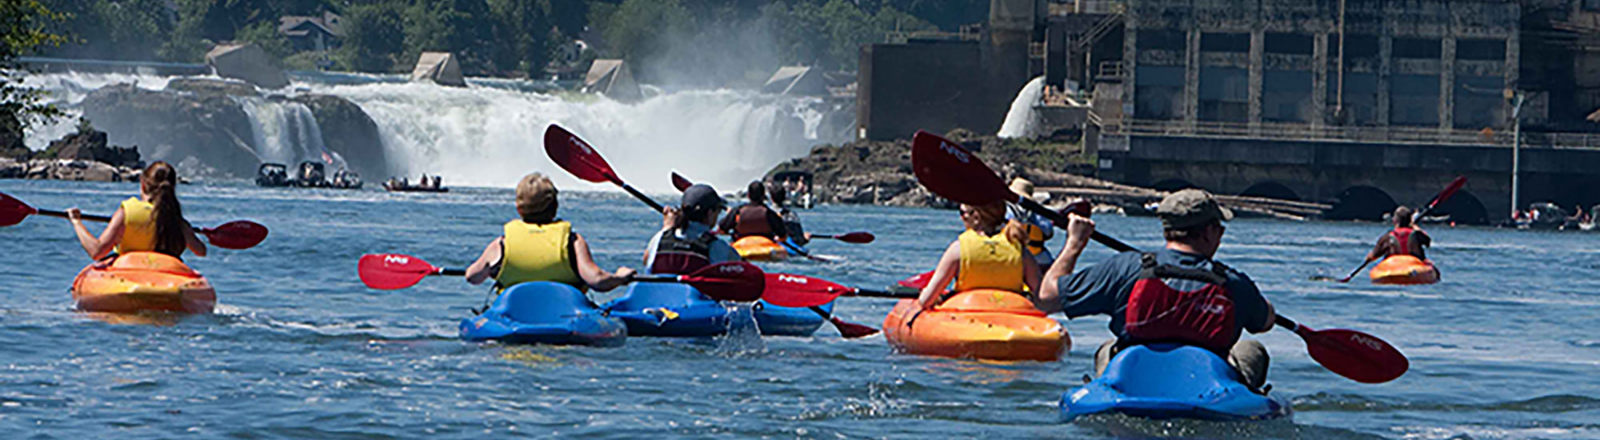 Group of kayakers paddle towards Willamette Falls' rushing waters of the Willamette River in Oregon's Mt. Hood Territory.